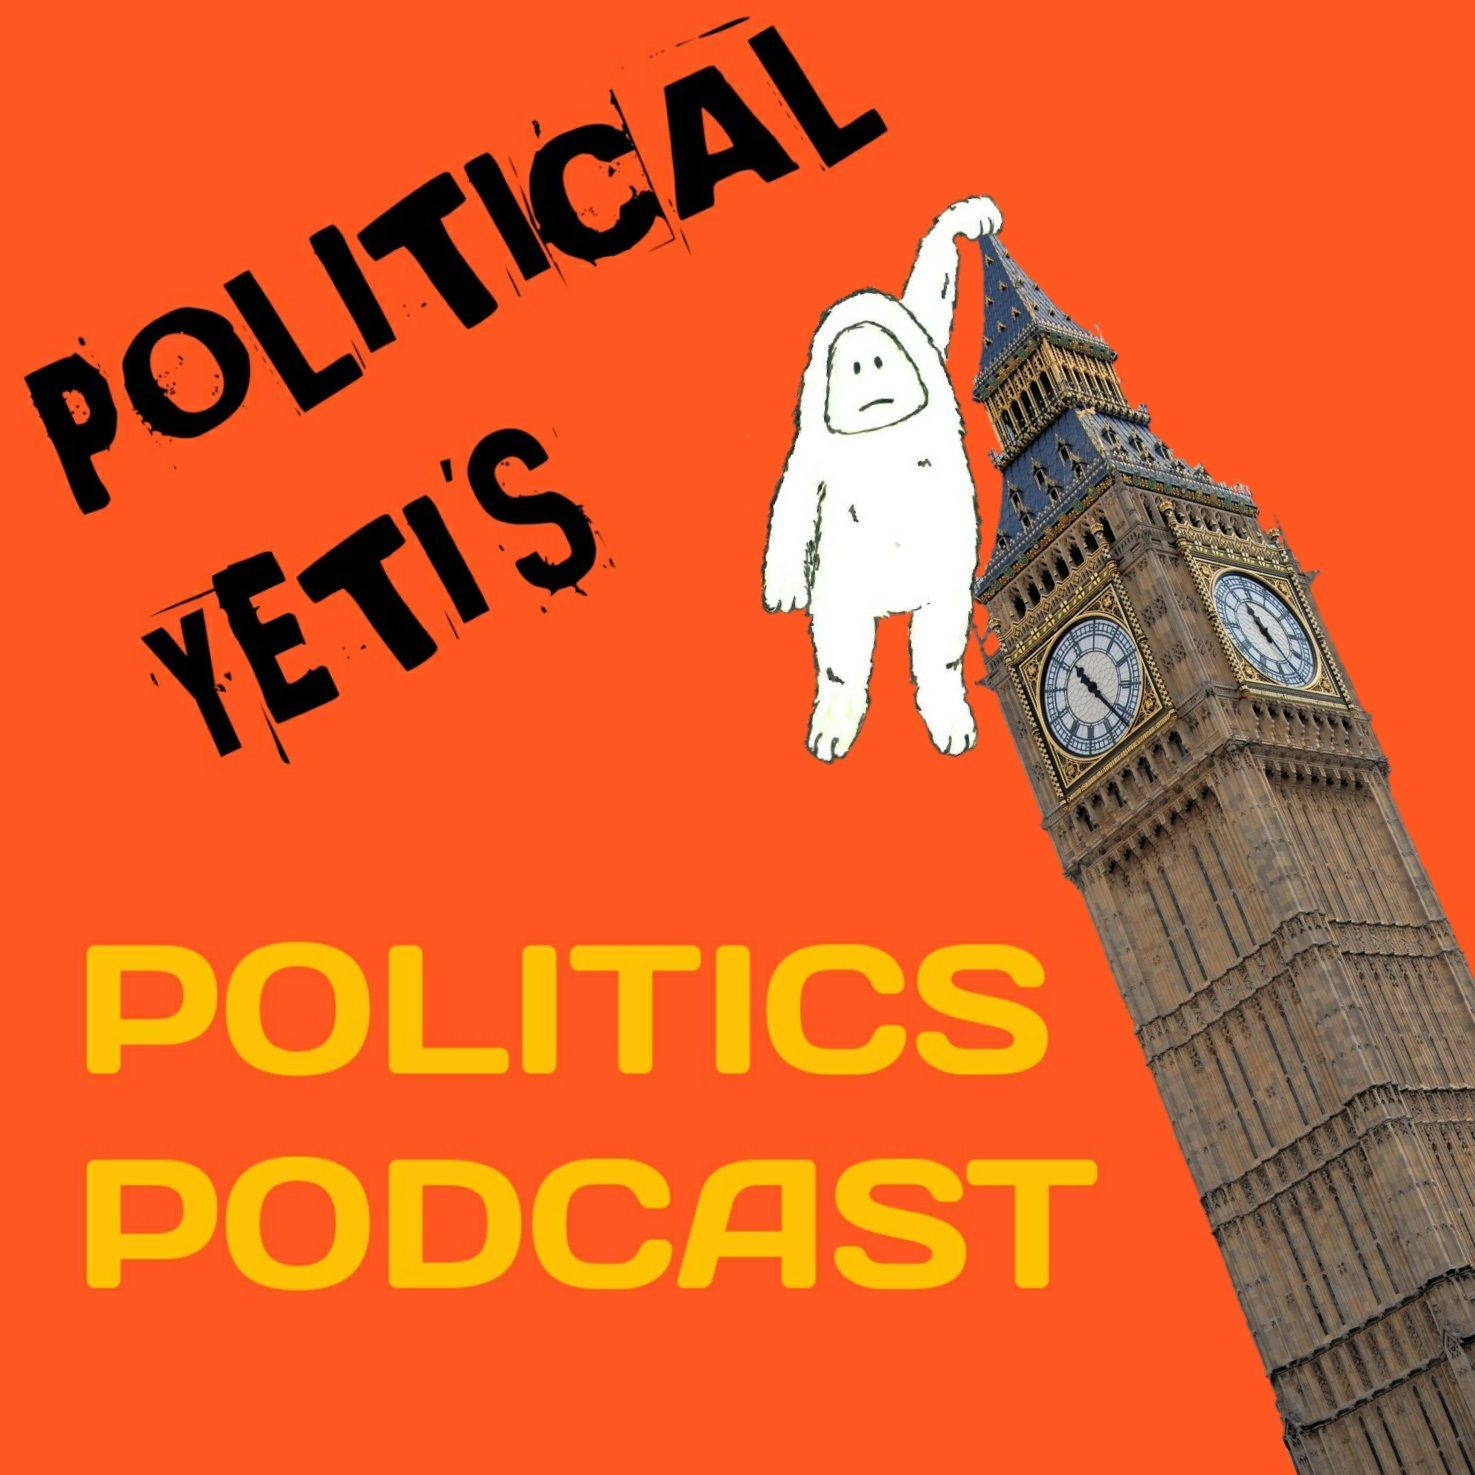 EPISODE 52: Kirsty Blackman on crisps, Brexit and Nazis